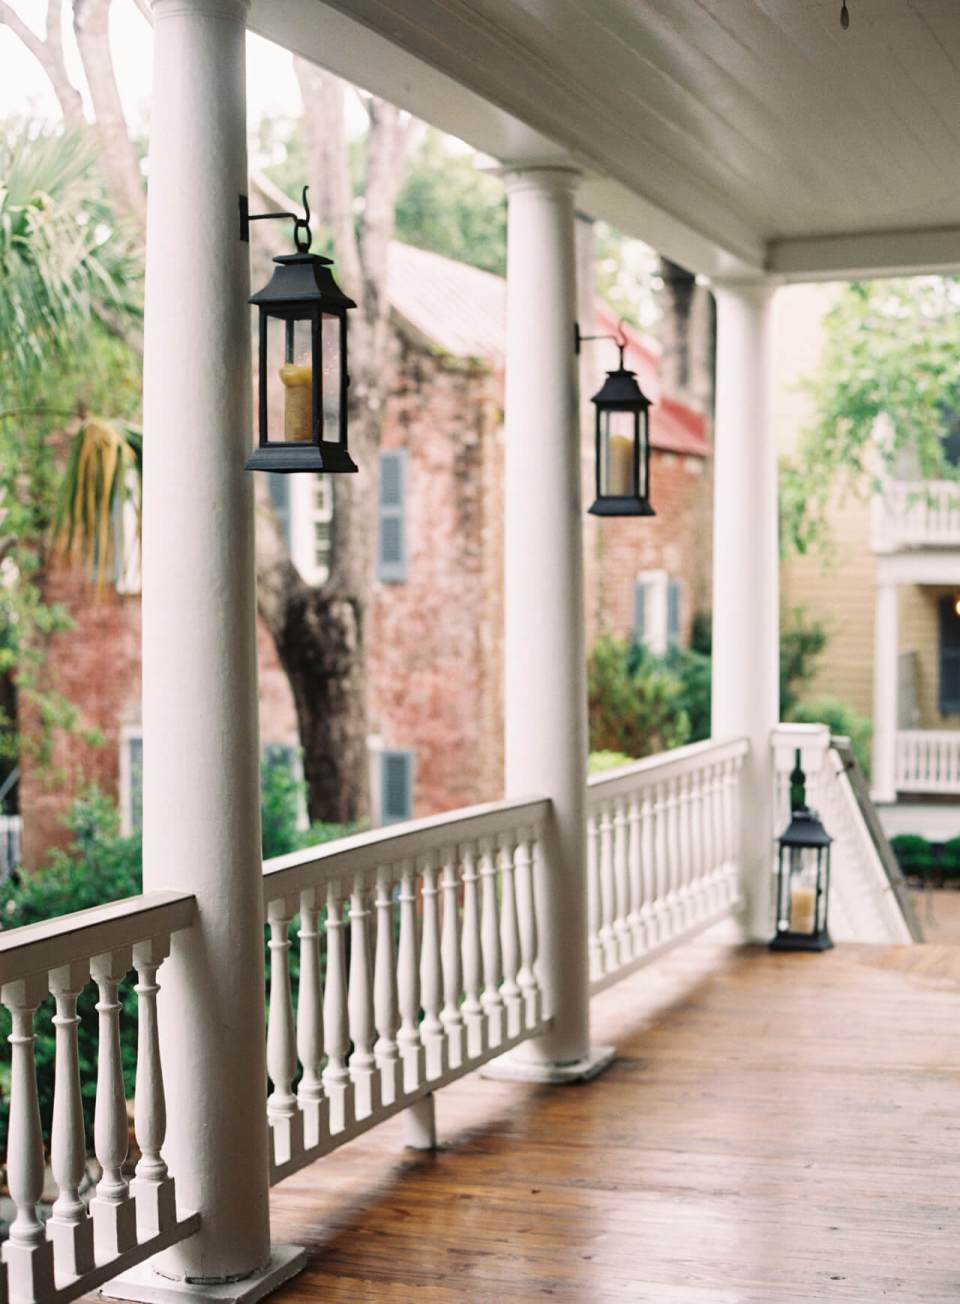 Porches always add charm to a home   Trending & Vintage Porch Lighting Ideas & Designs   FarmFoodFamily.com